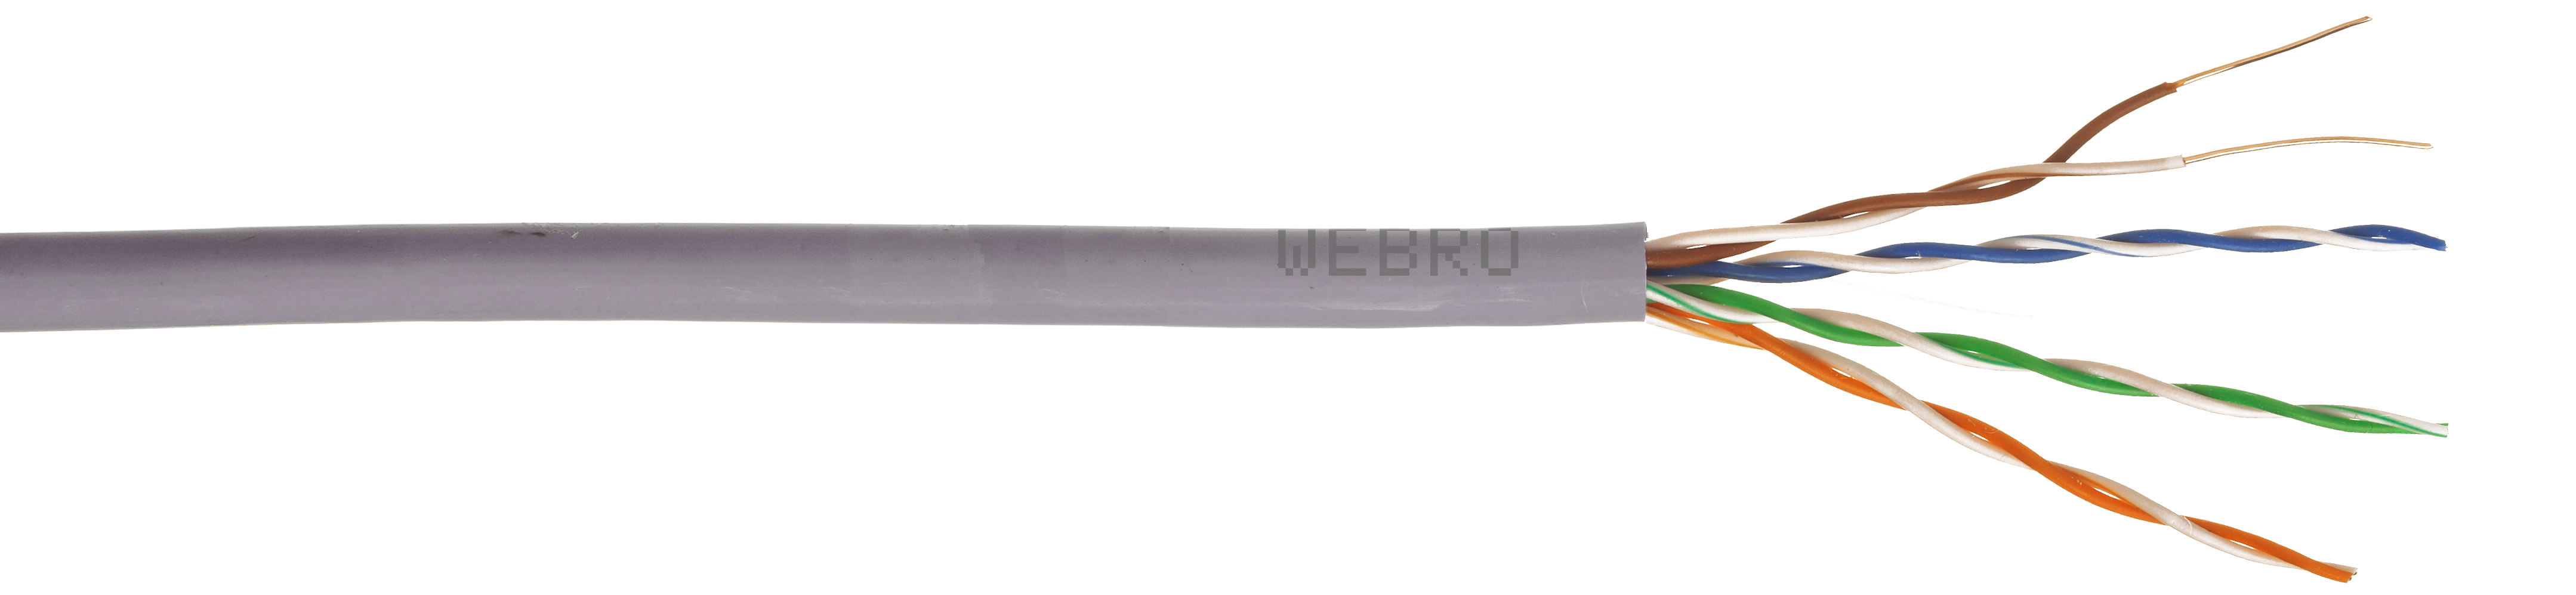 Webro category cable, cat-6 cable, category cable, cat-6